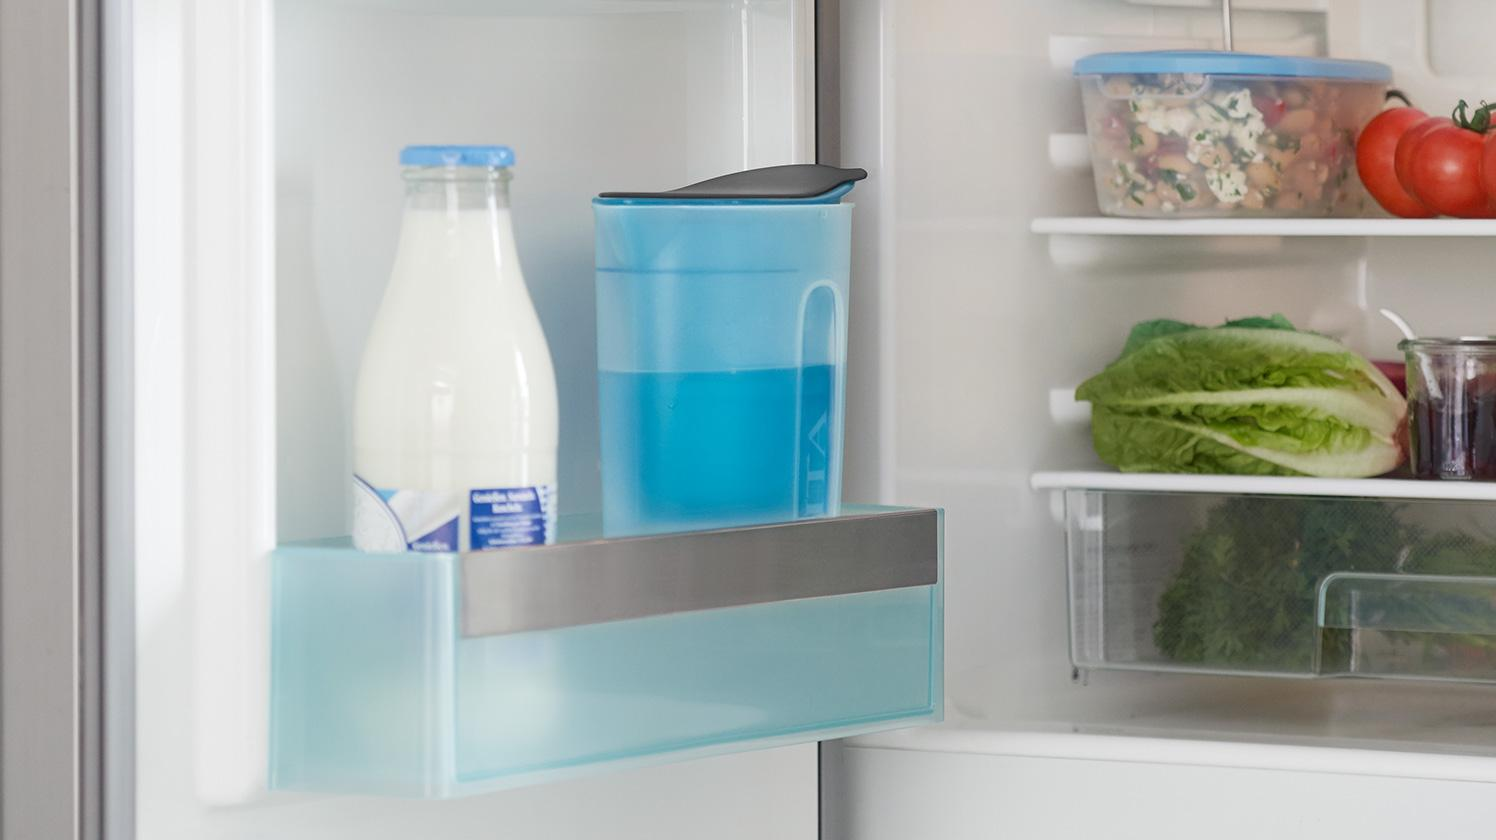 BRITA fill&enjoy Fun blue kitchen fridge